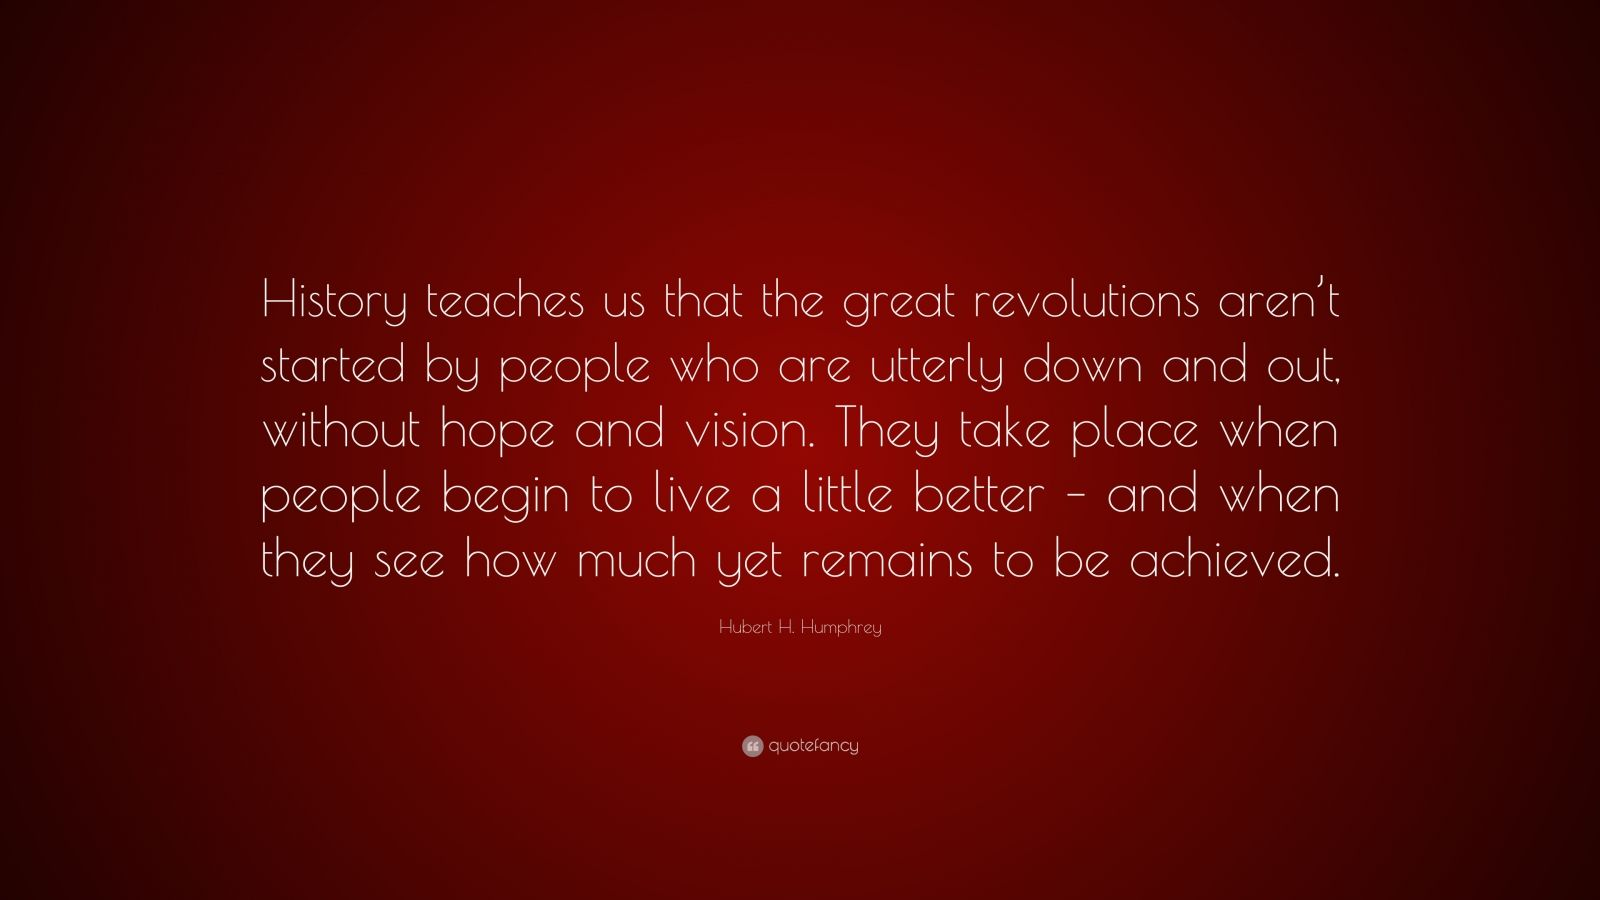 """Hubert H. Humphrey Quote: """"History teaches us that the great revolutions aren't started by people who are utterly down and out, without hope and vision. They take place when people begin to live a little better – and when they see how much yet remains to be achieved."""""""